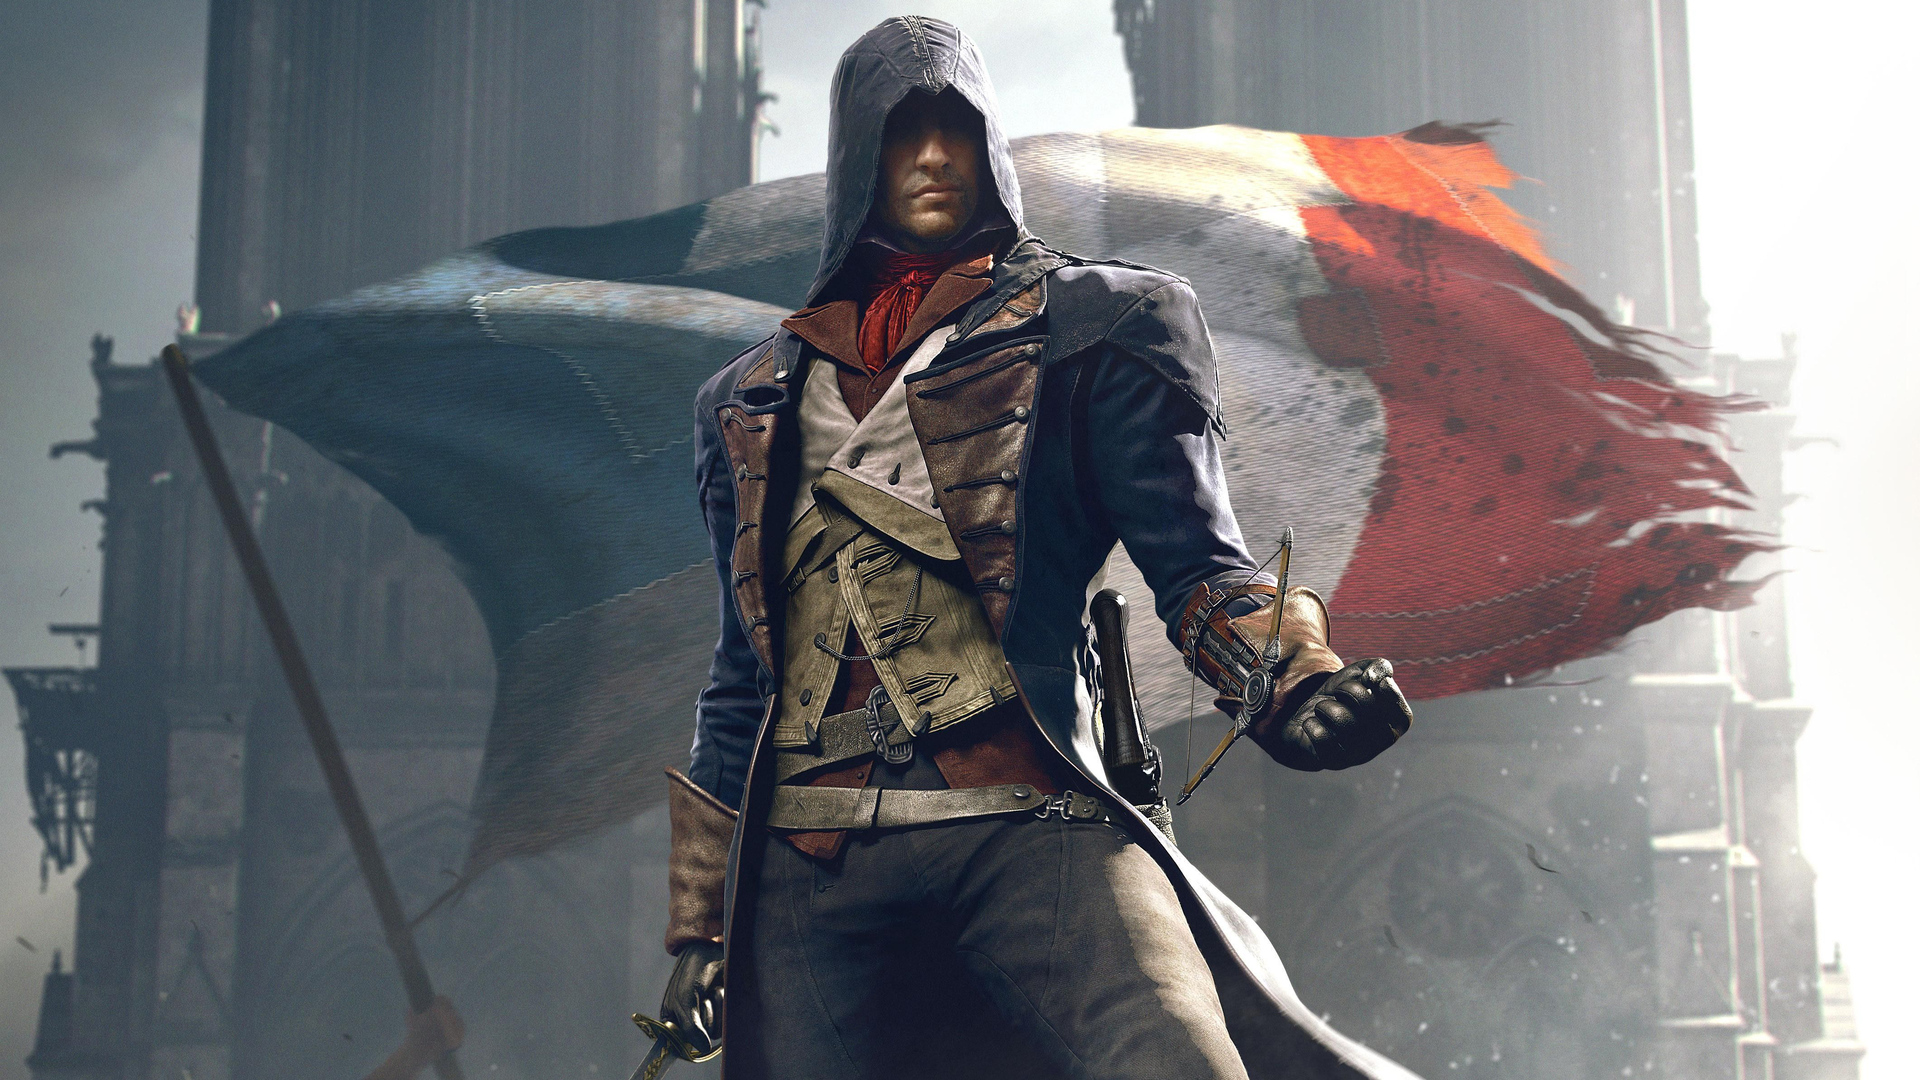 1920x1080 Art Of Assassins Creed Unity Laptop Full Hd 1080p Hd 4k Images, Photos, Reviews